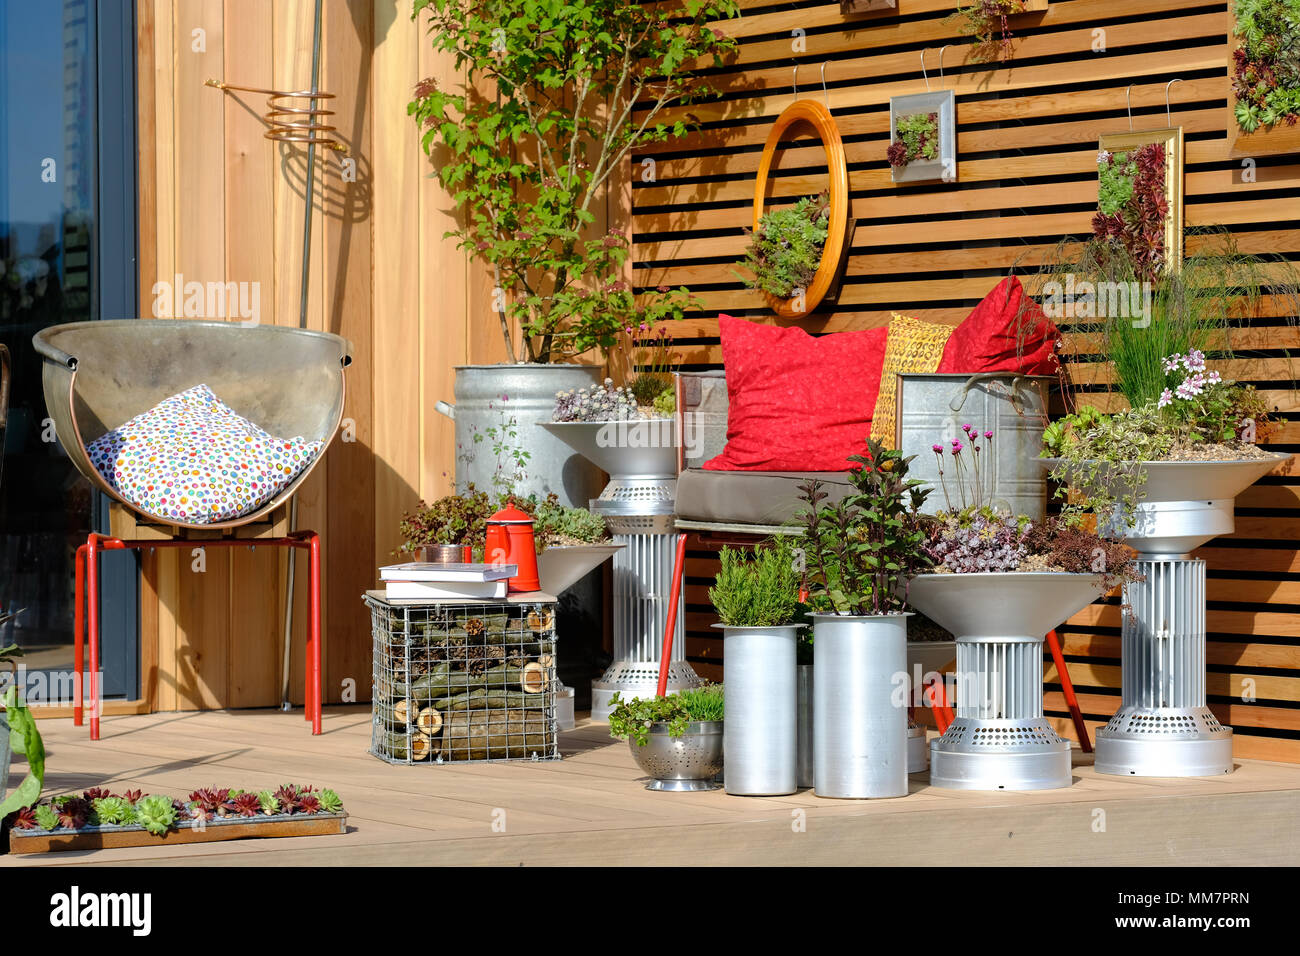 Malvern, UK. RHS Malvern Spring Festival - Thursday 10th May 2018 - Opening Day for this years RHS Malvern Spring Festival - The show gardens include Outside Number 39 designed by Elaine Portch features a garden solution for the confined space of an urban balcony - Photo Steven May / Alamy Live News - Stock Image